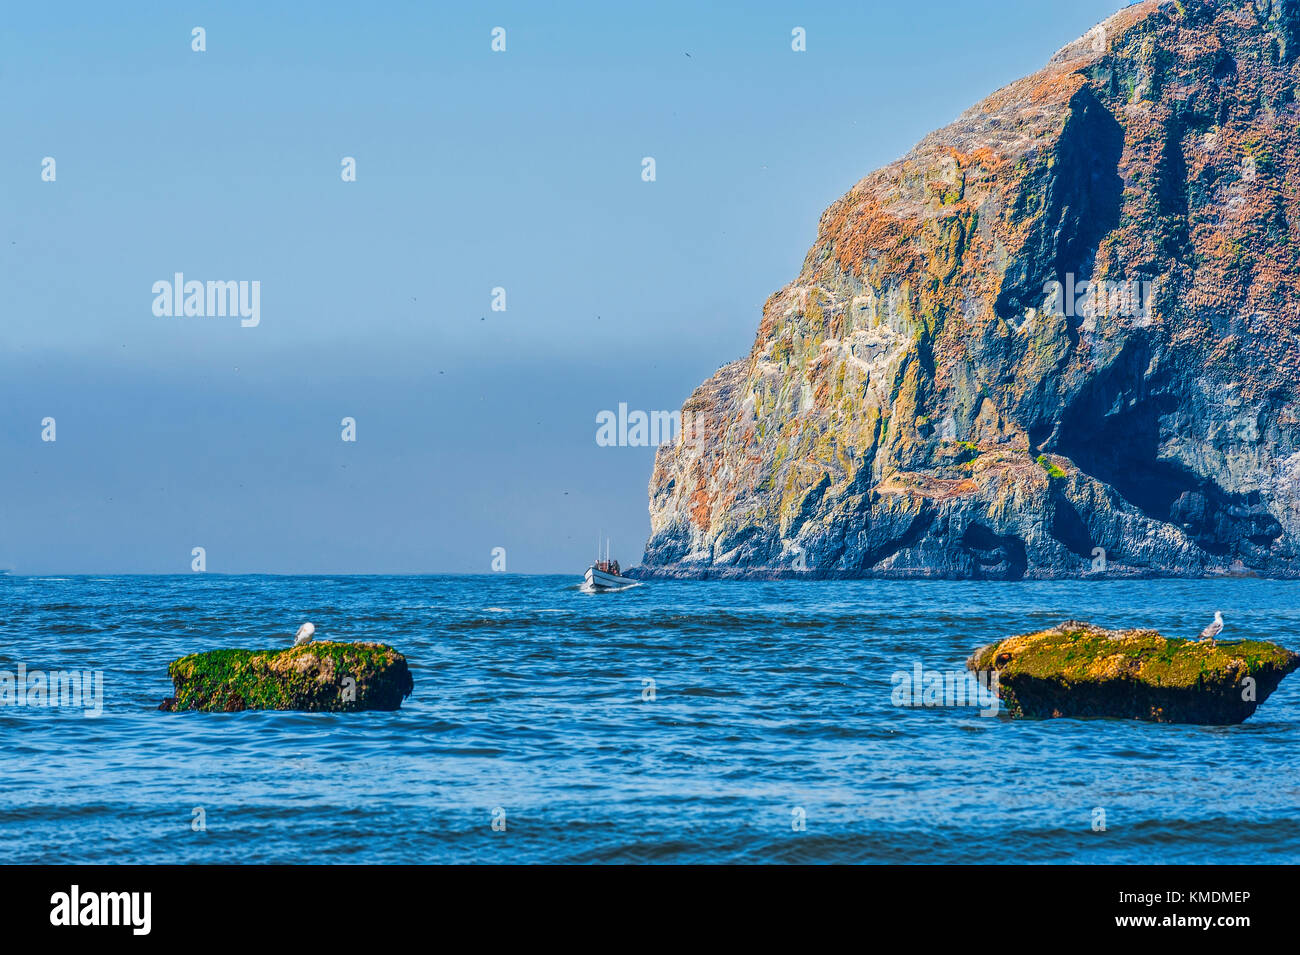 Pacific City, Oregon, USA - July 2, 2015: A dory boat passes Haystack Rock making it's approach to landing on - Stock Image